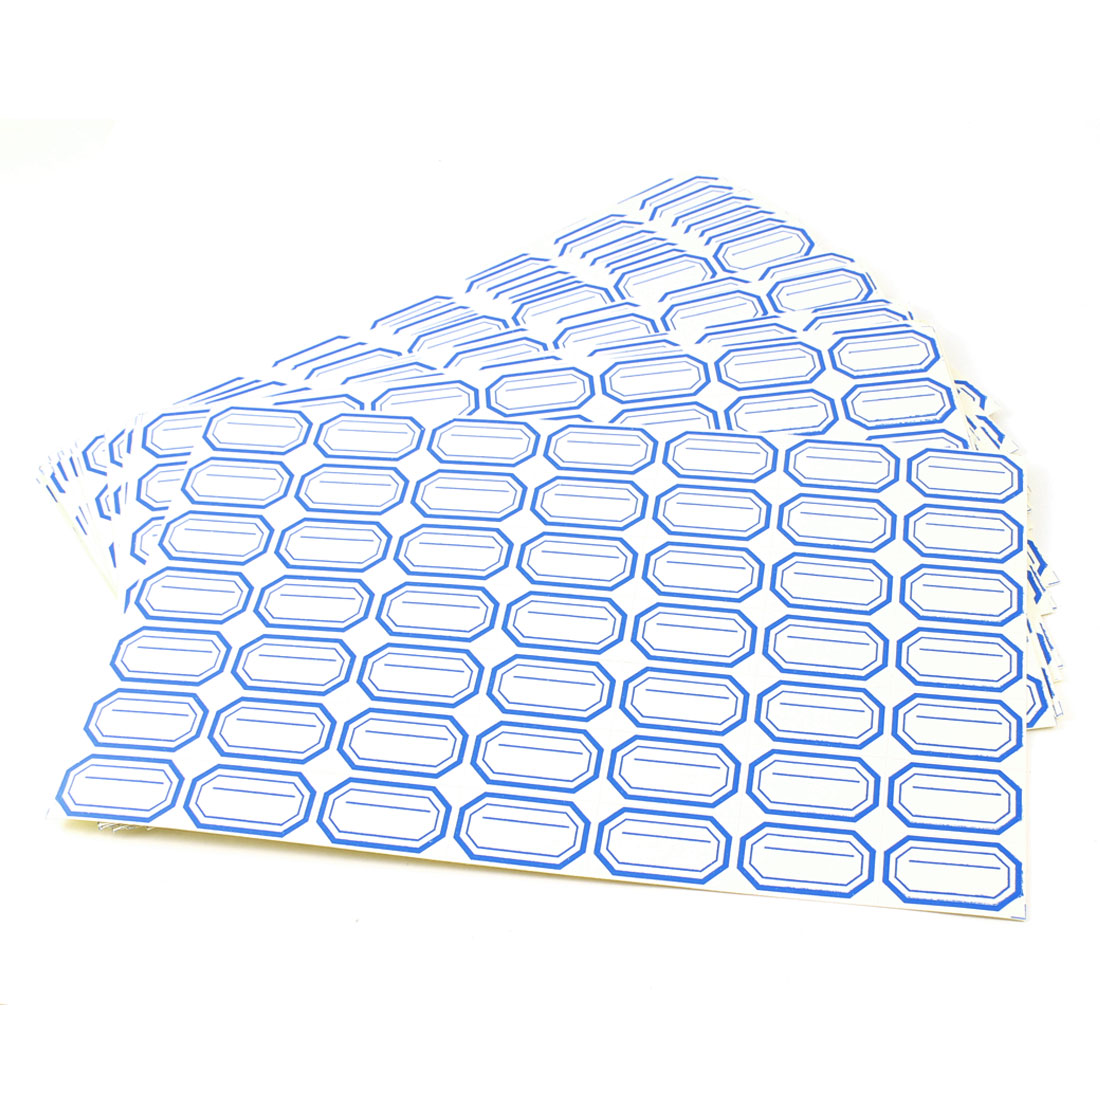 35pcs White Blue Self Adhesive Lines Pattern Shop Price Marking Label Paper Tagboard